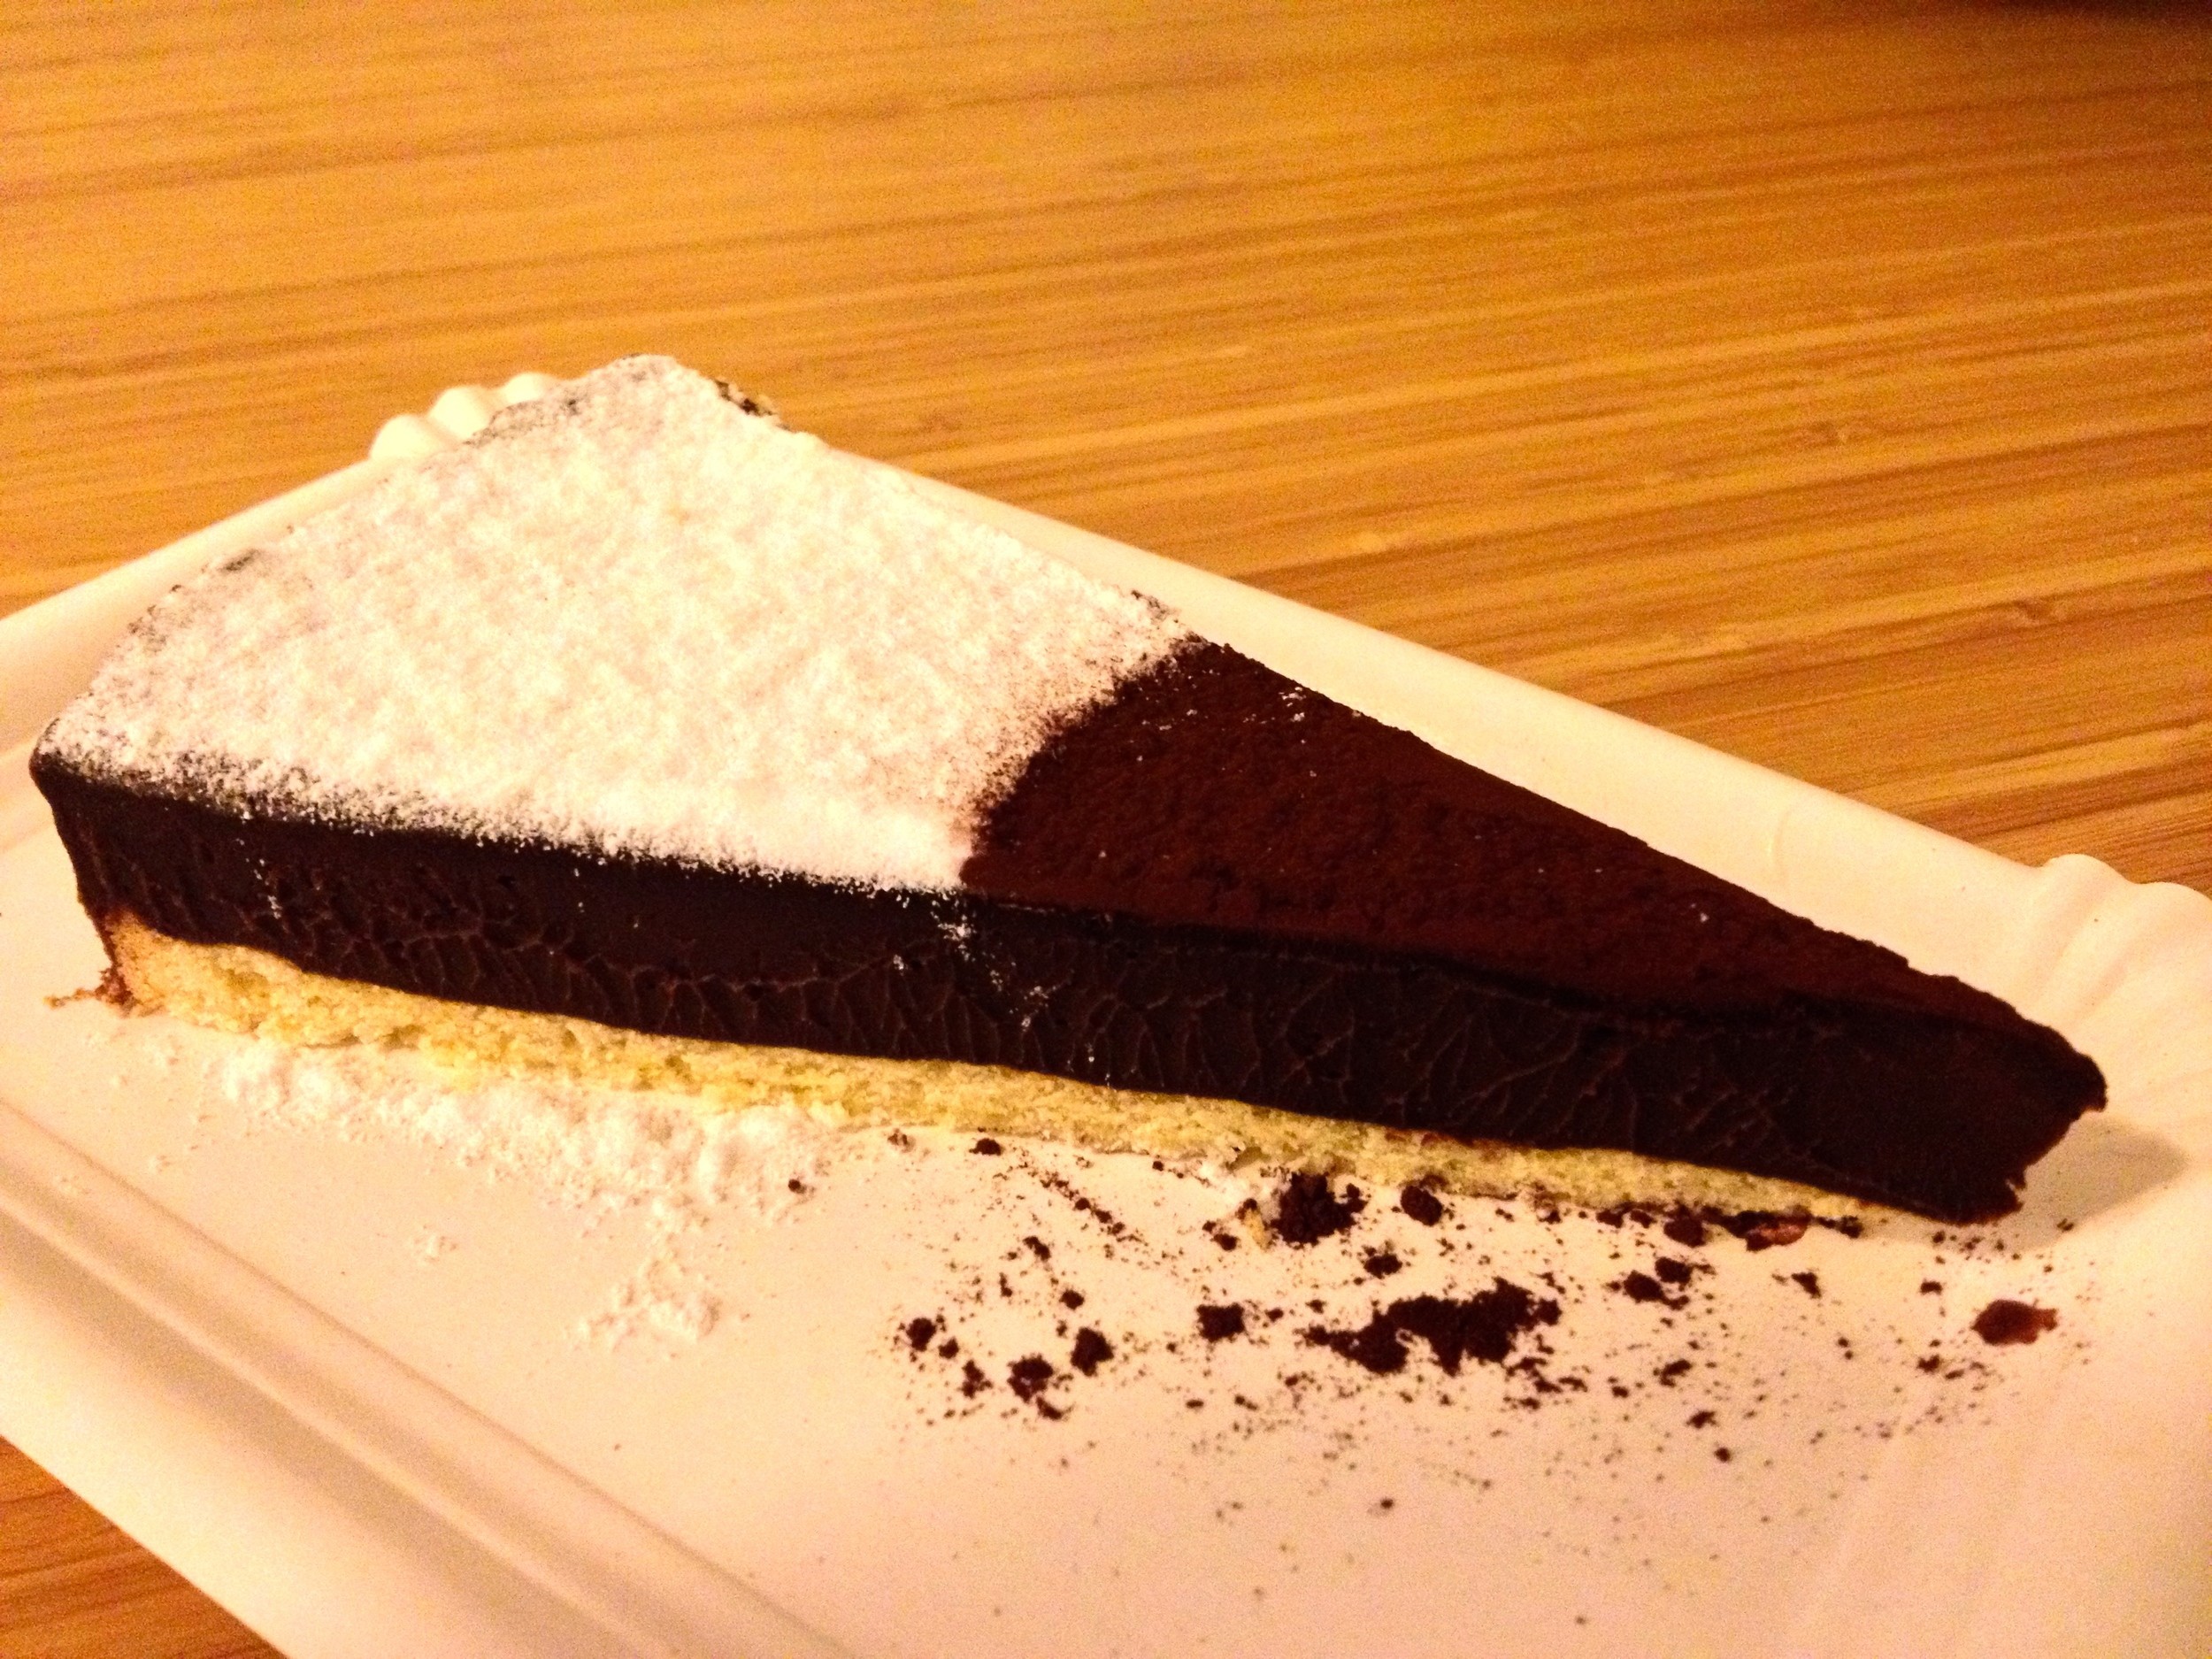 The most delicious truffle cake ever at  Hüftengold